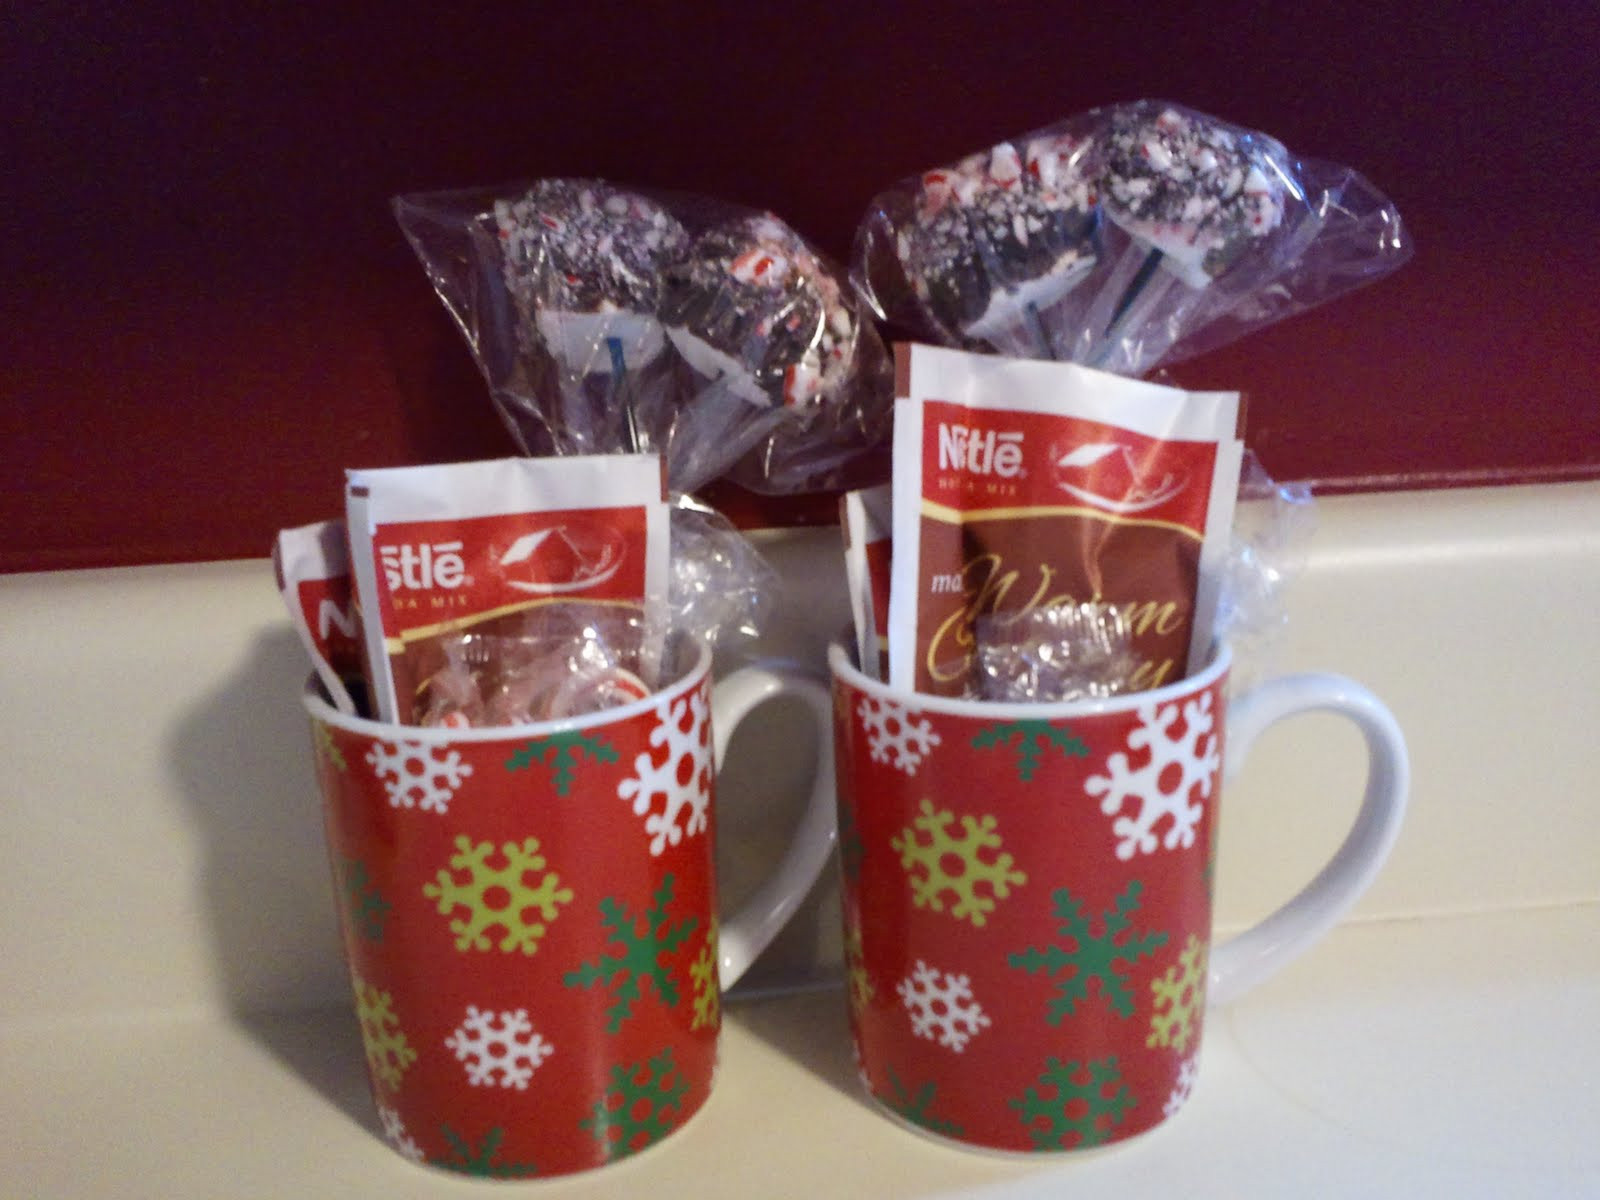 Best ideas about Christmas Mug Gift Ideas . Save or Pin Peppermint Hot Chocolate Stirrers Homemade Christmas Now.